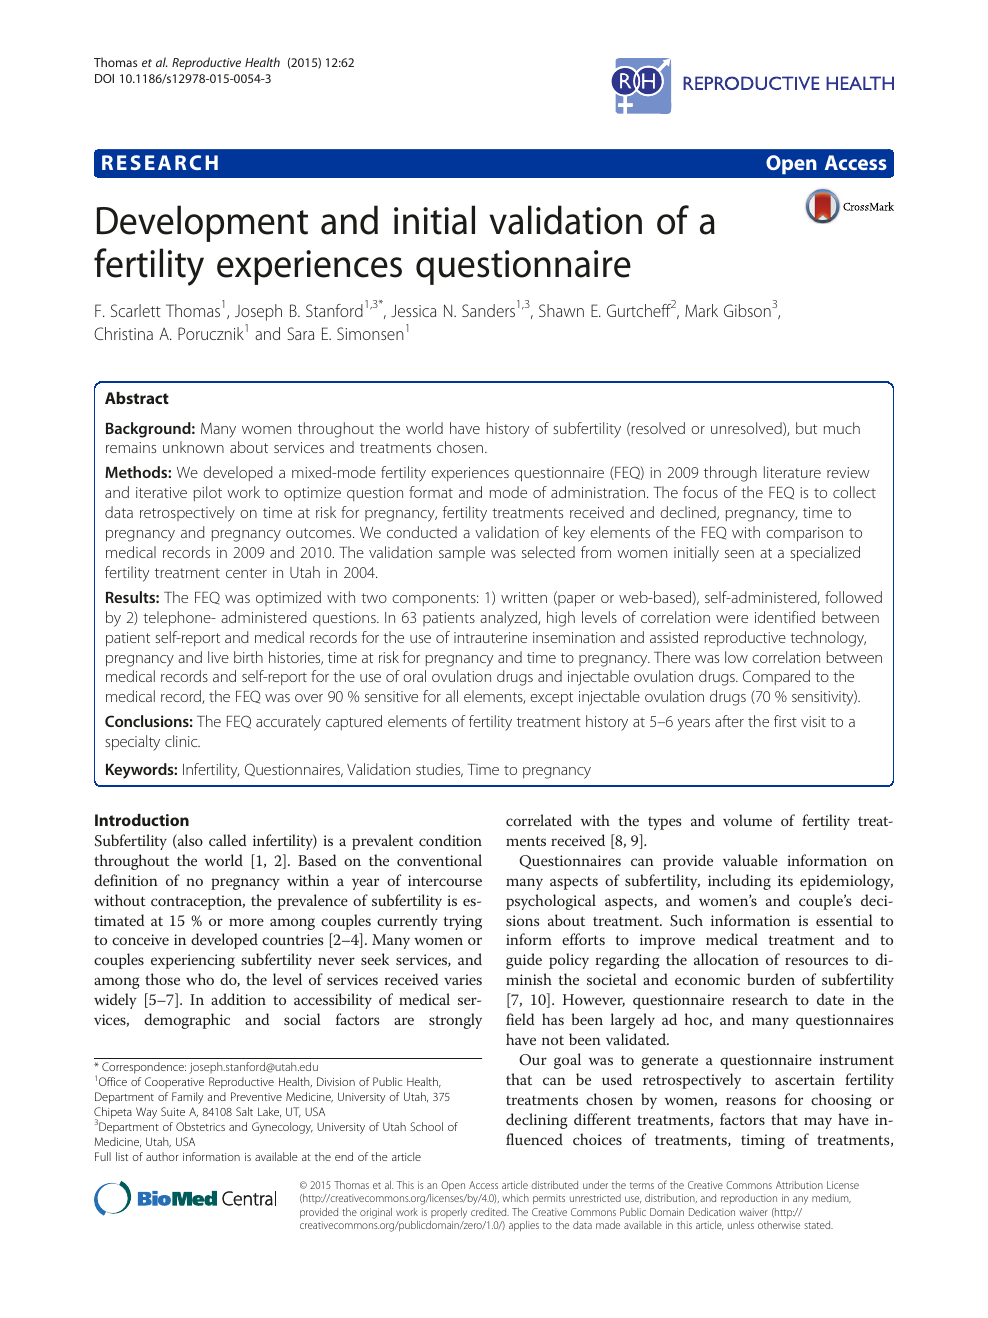 Development and initial validation of a fertility